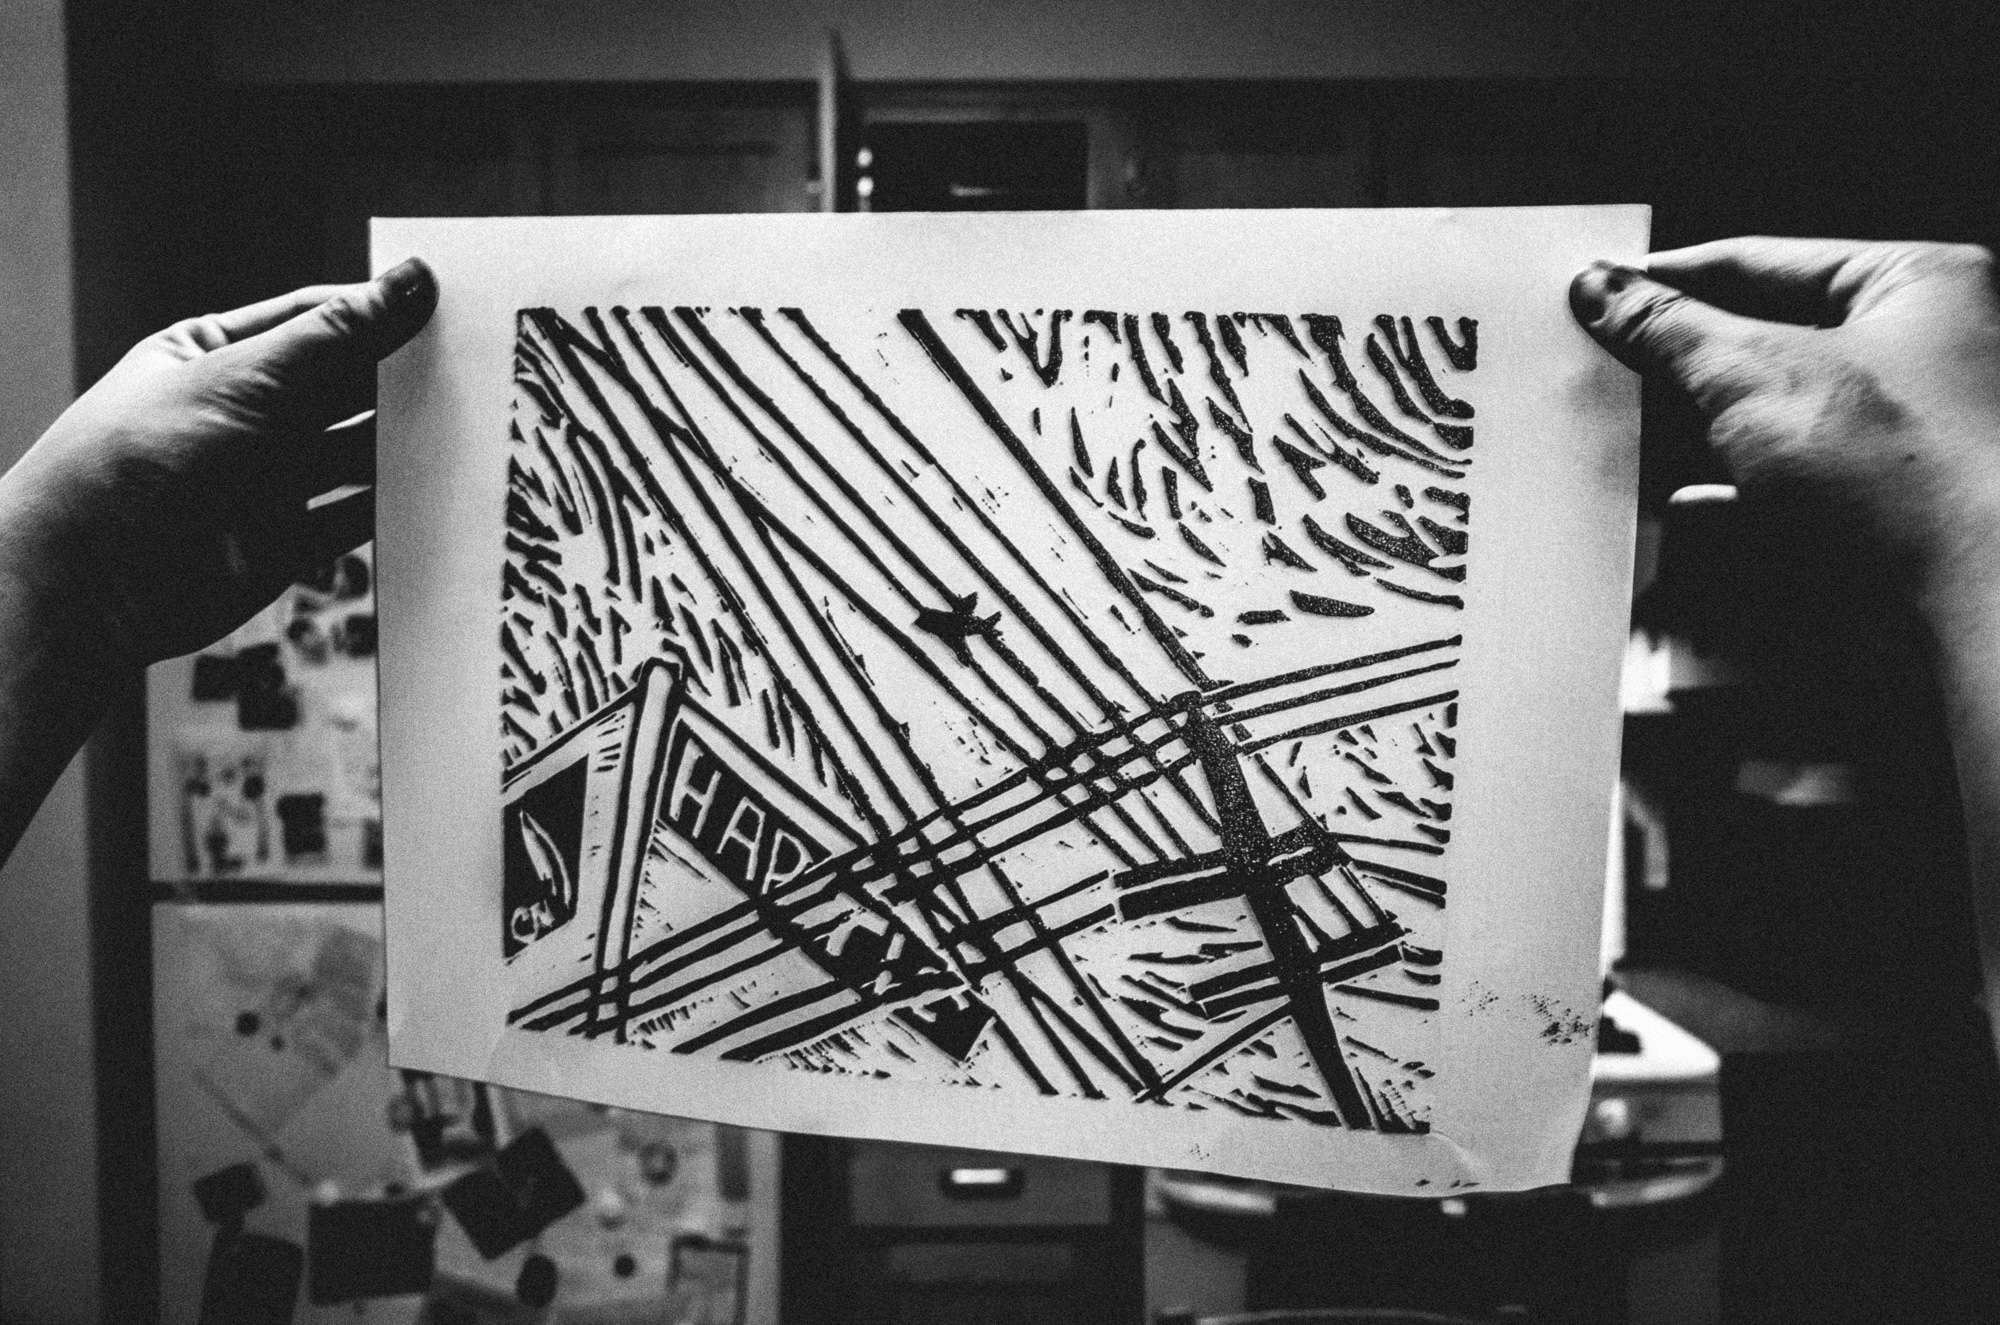 Between digital and analog: handmade linoleum prints of Eric Kim's photography